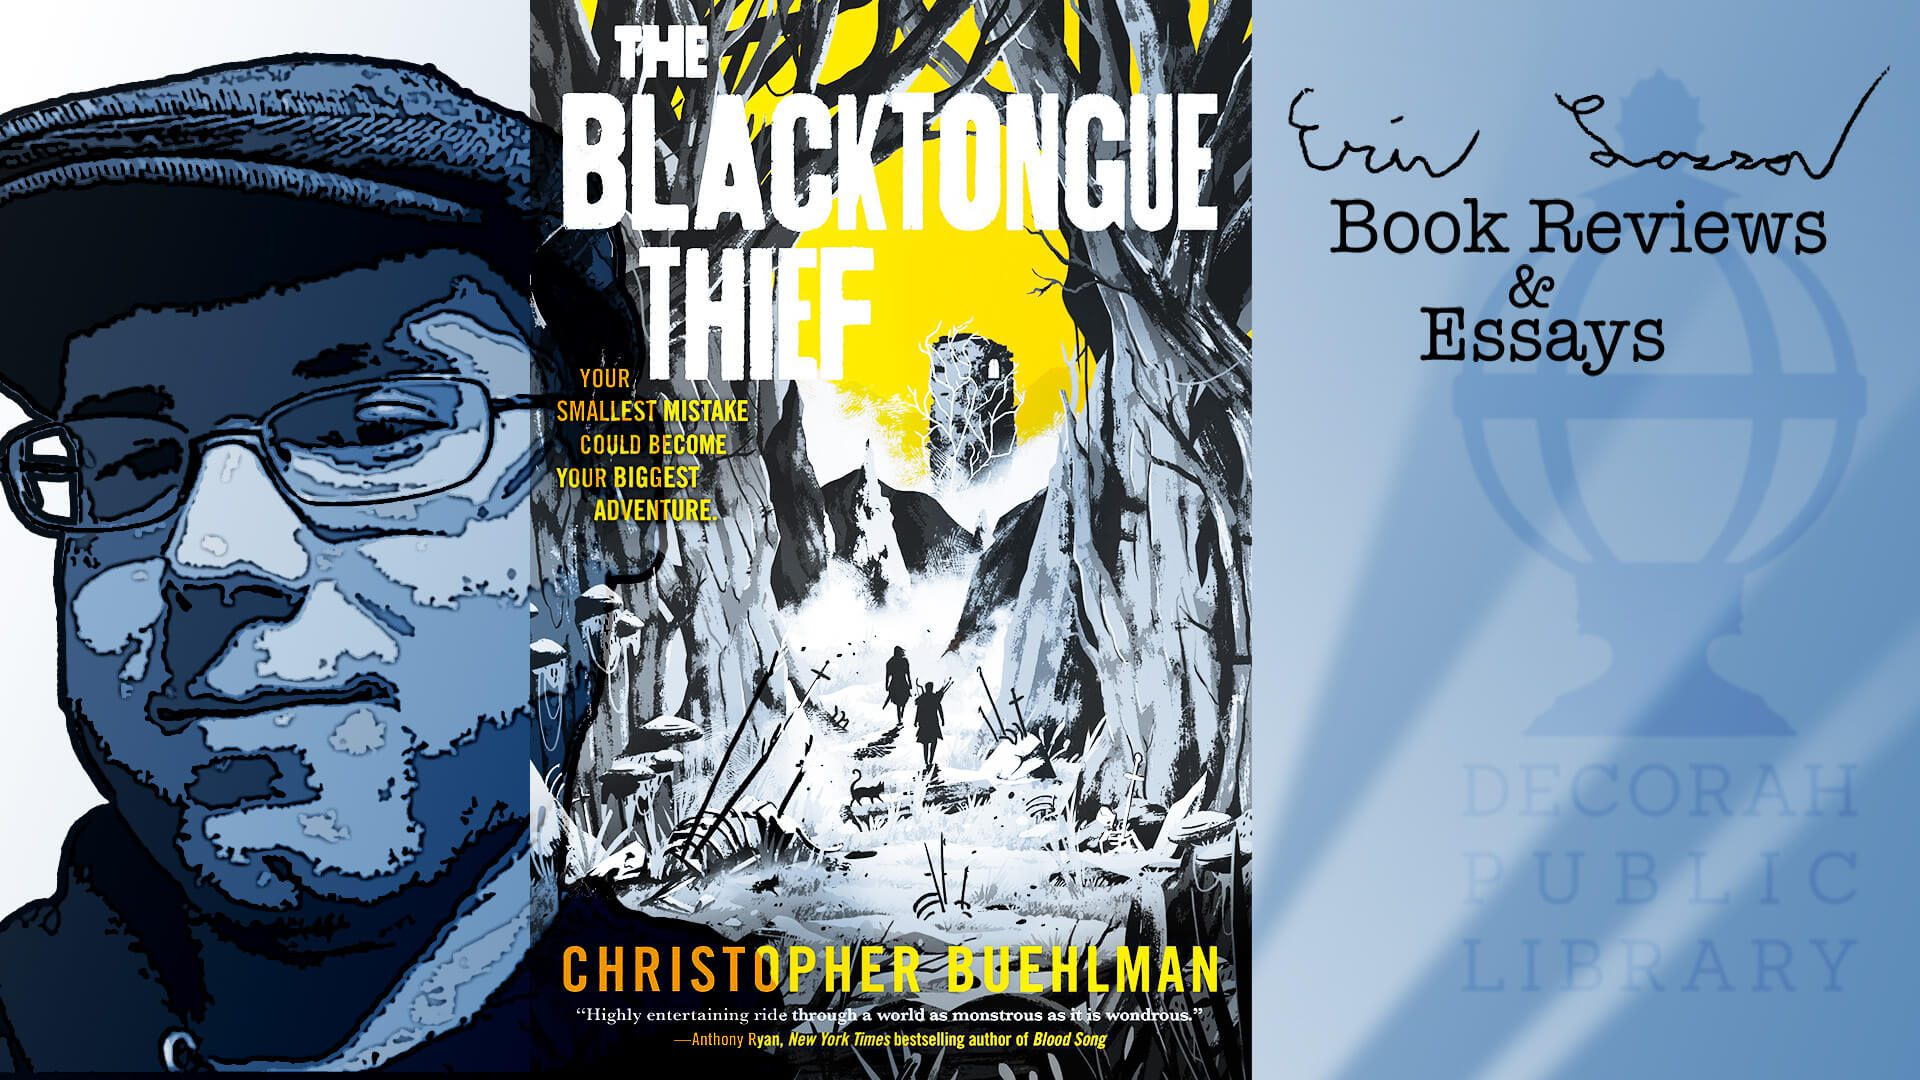 """""""The Blacktongue Thief"""" by Christopher Buehlman"""